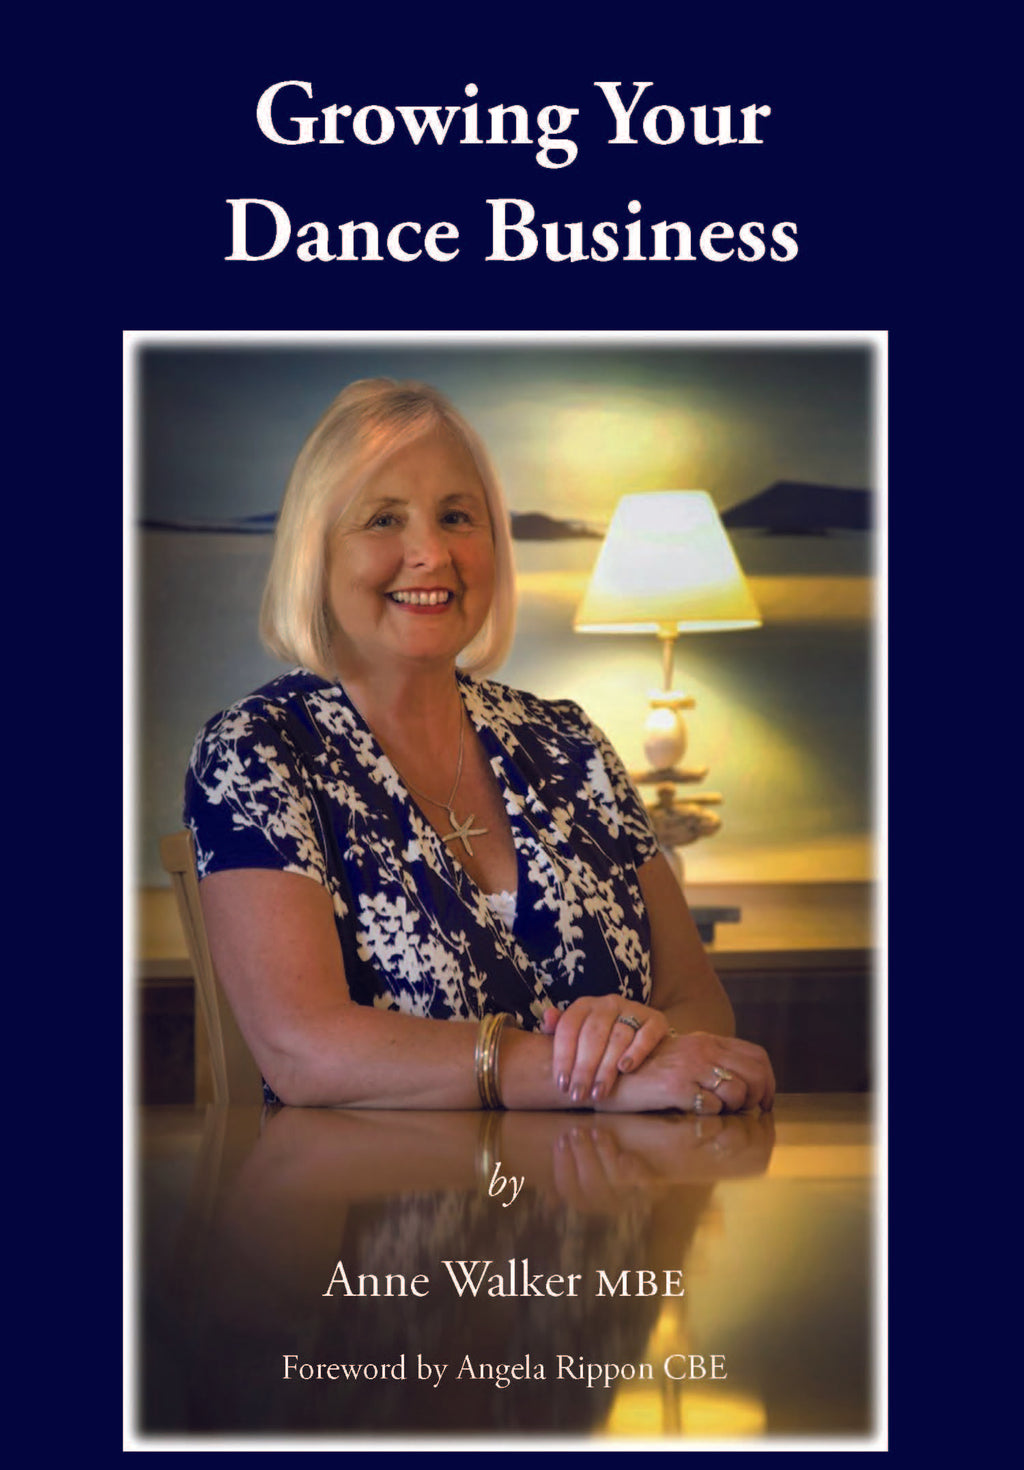 Growing Your Dance Business Book by Anne Walker - Anne Walker's new book for dance teachers and dance business owners